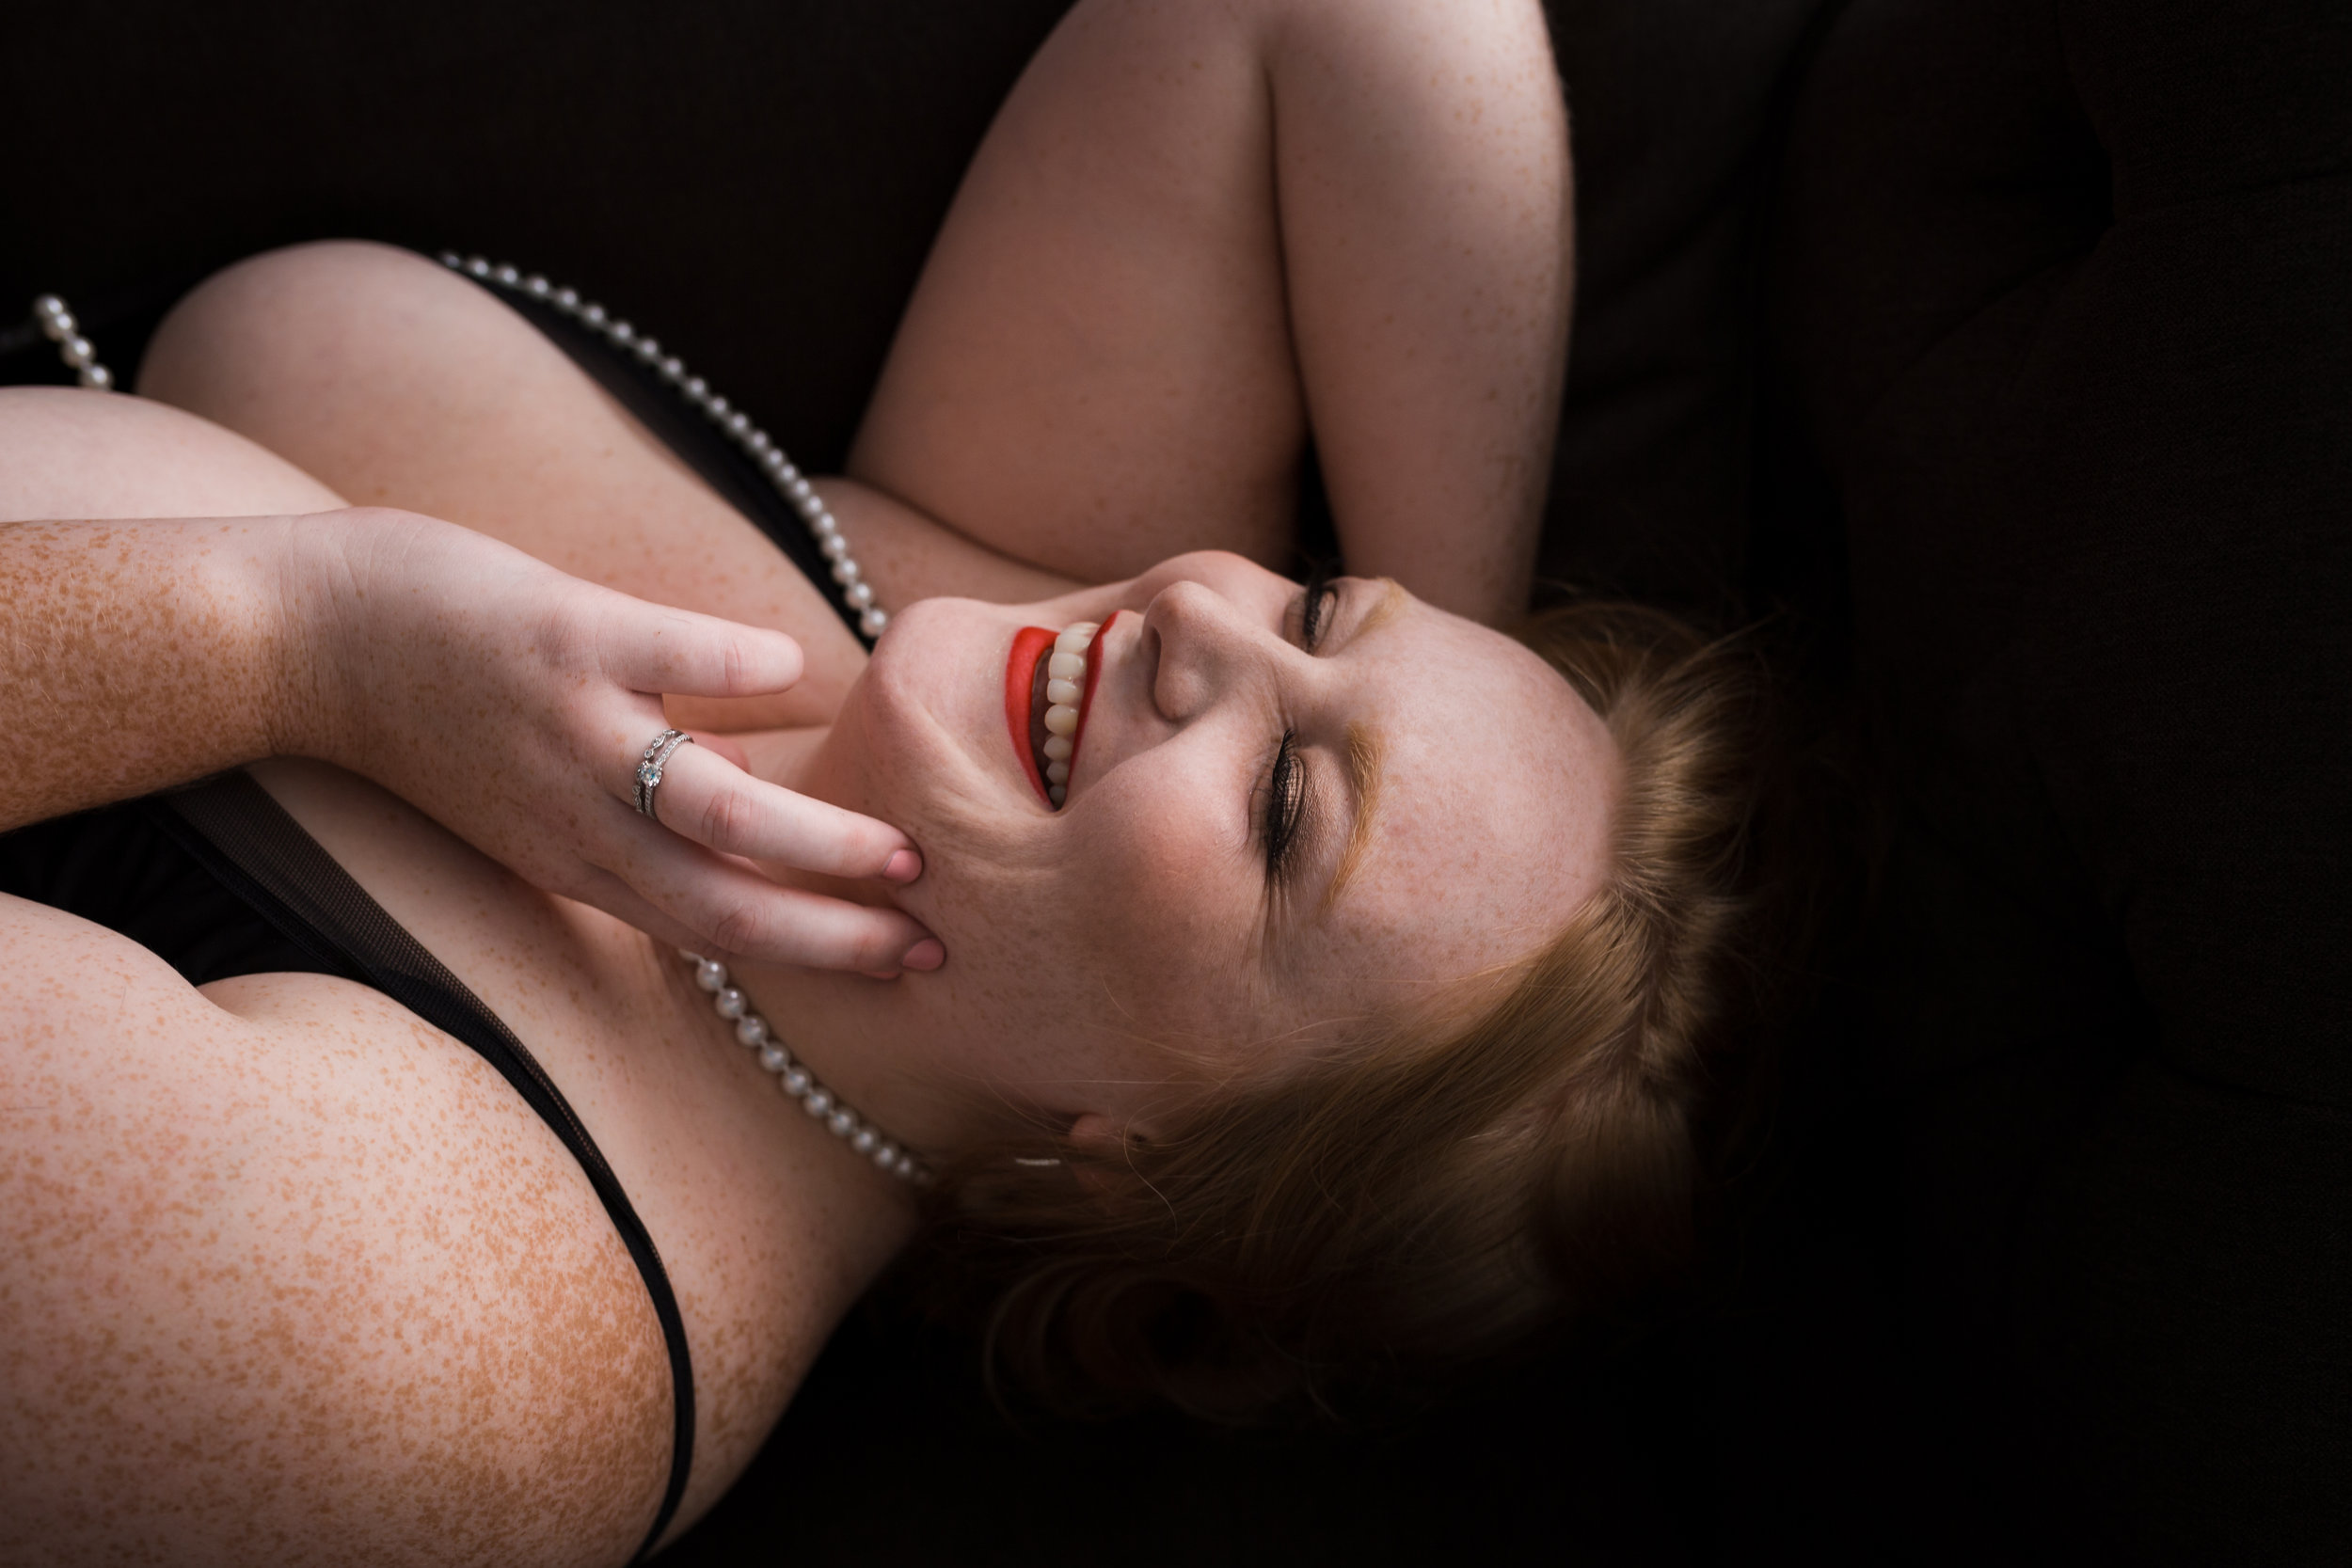 Nine19PhotographyRaleighNCBoudoirPhotographer-7658.jpg